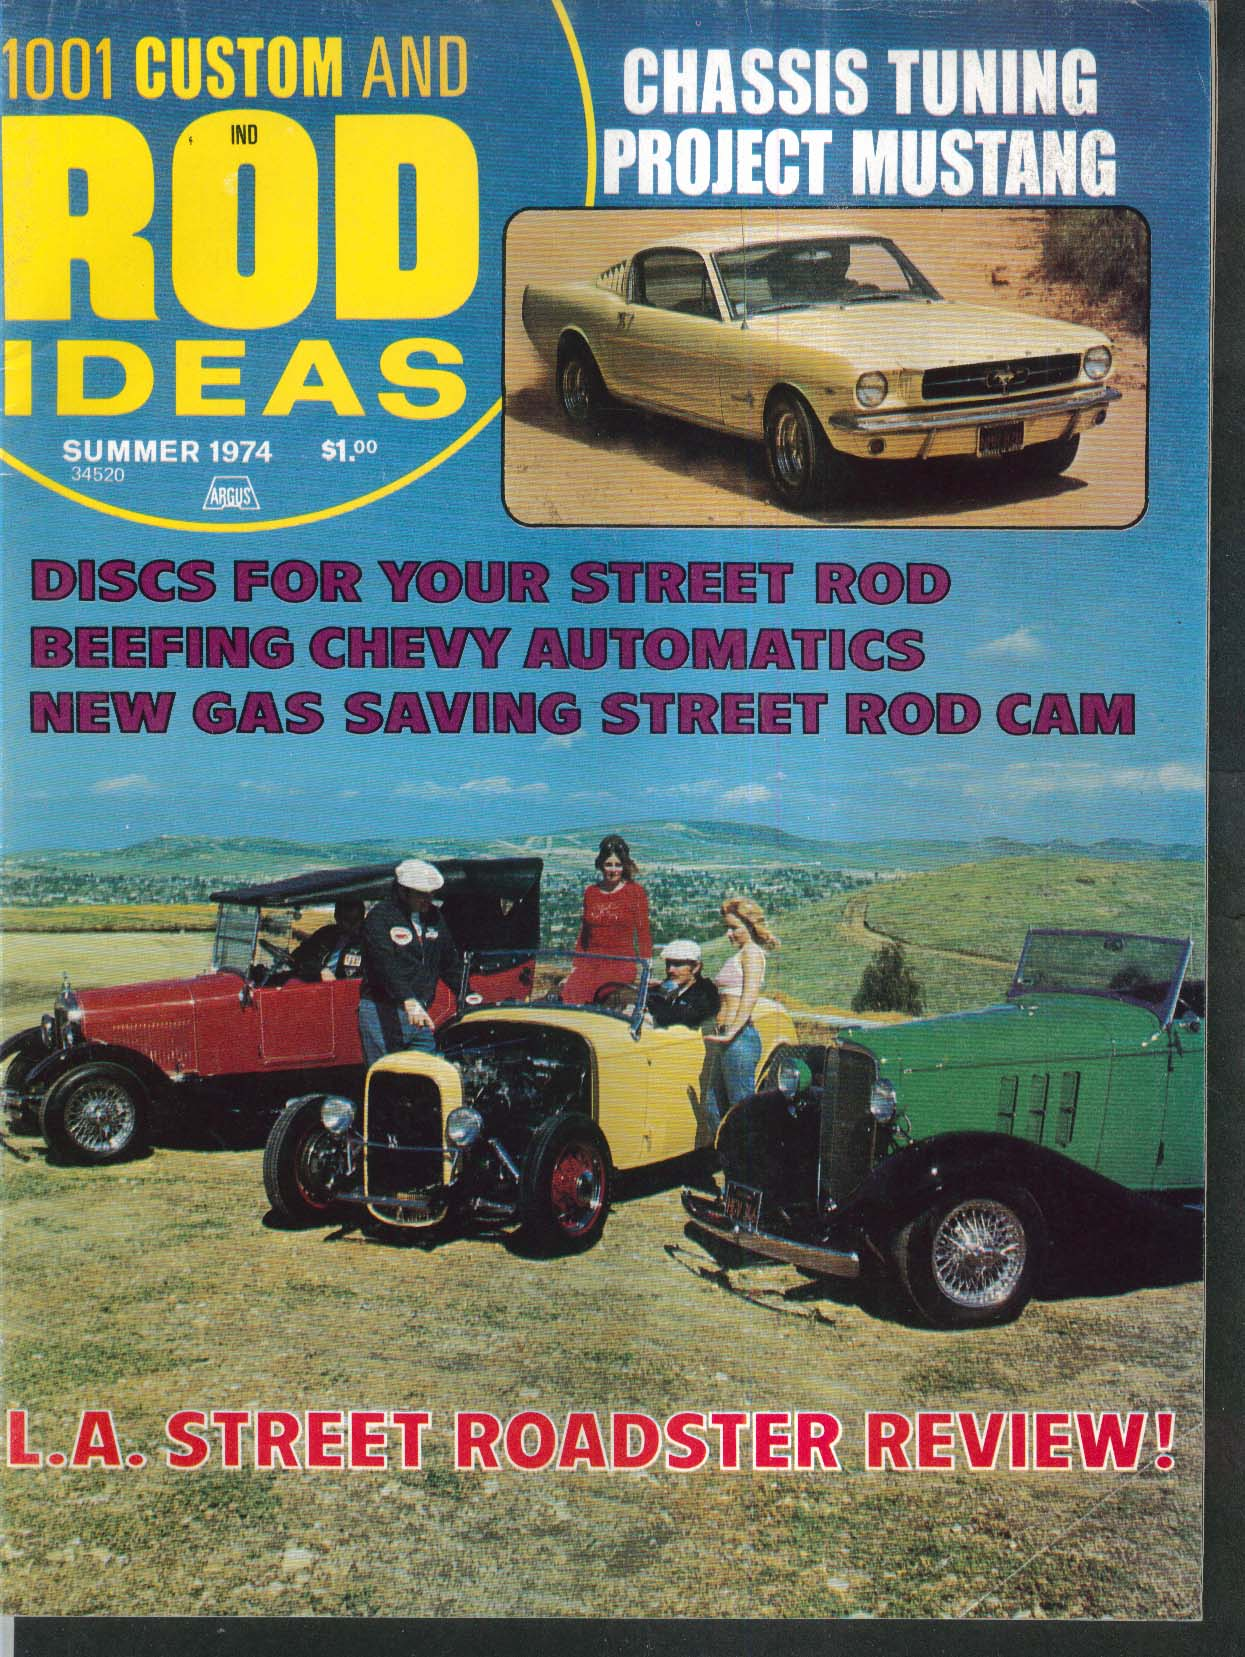 1001 CUSTOM & ROD IDEAS Mustang Chassis Tune Chevy Auto LA Roadsters Summer 1974